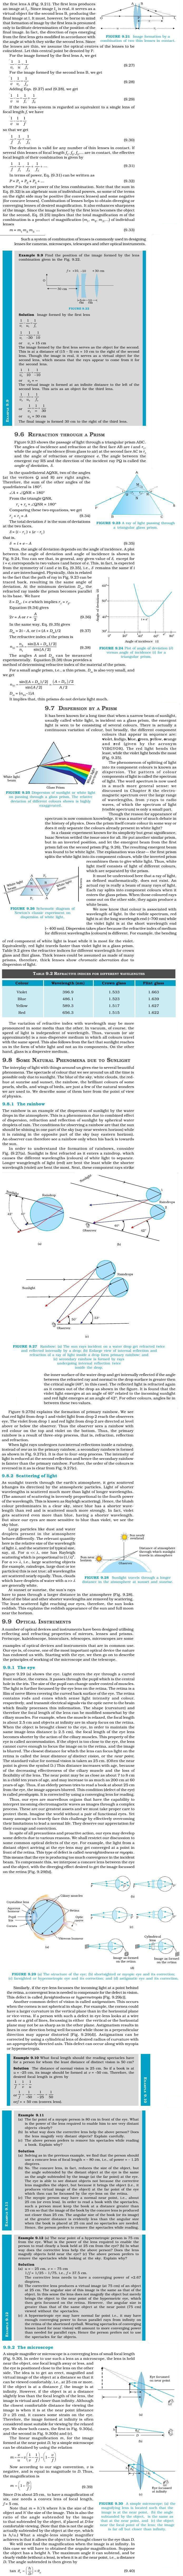 NCERT Class XII Physics Chapter 9 - Ray Optics and Optical Instruments